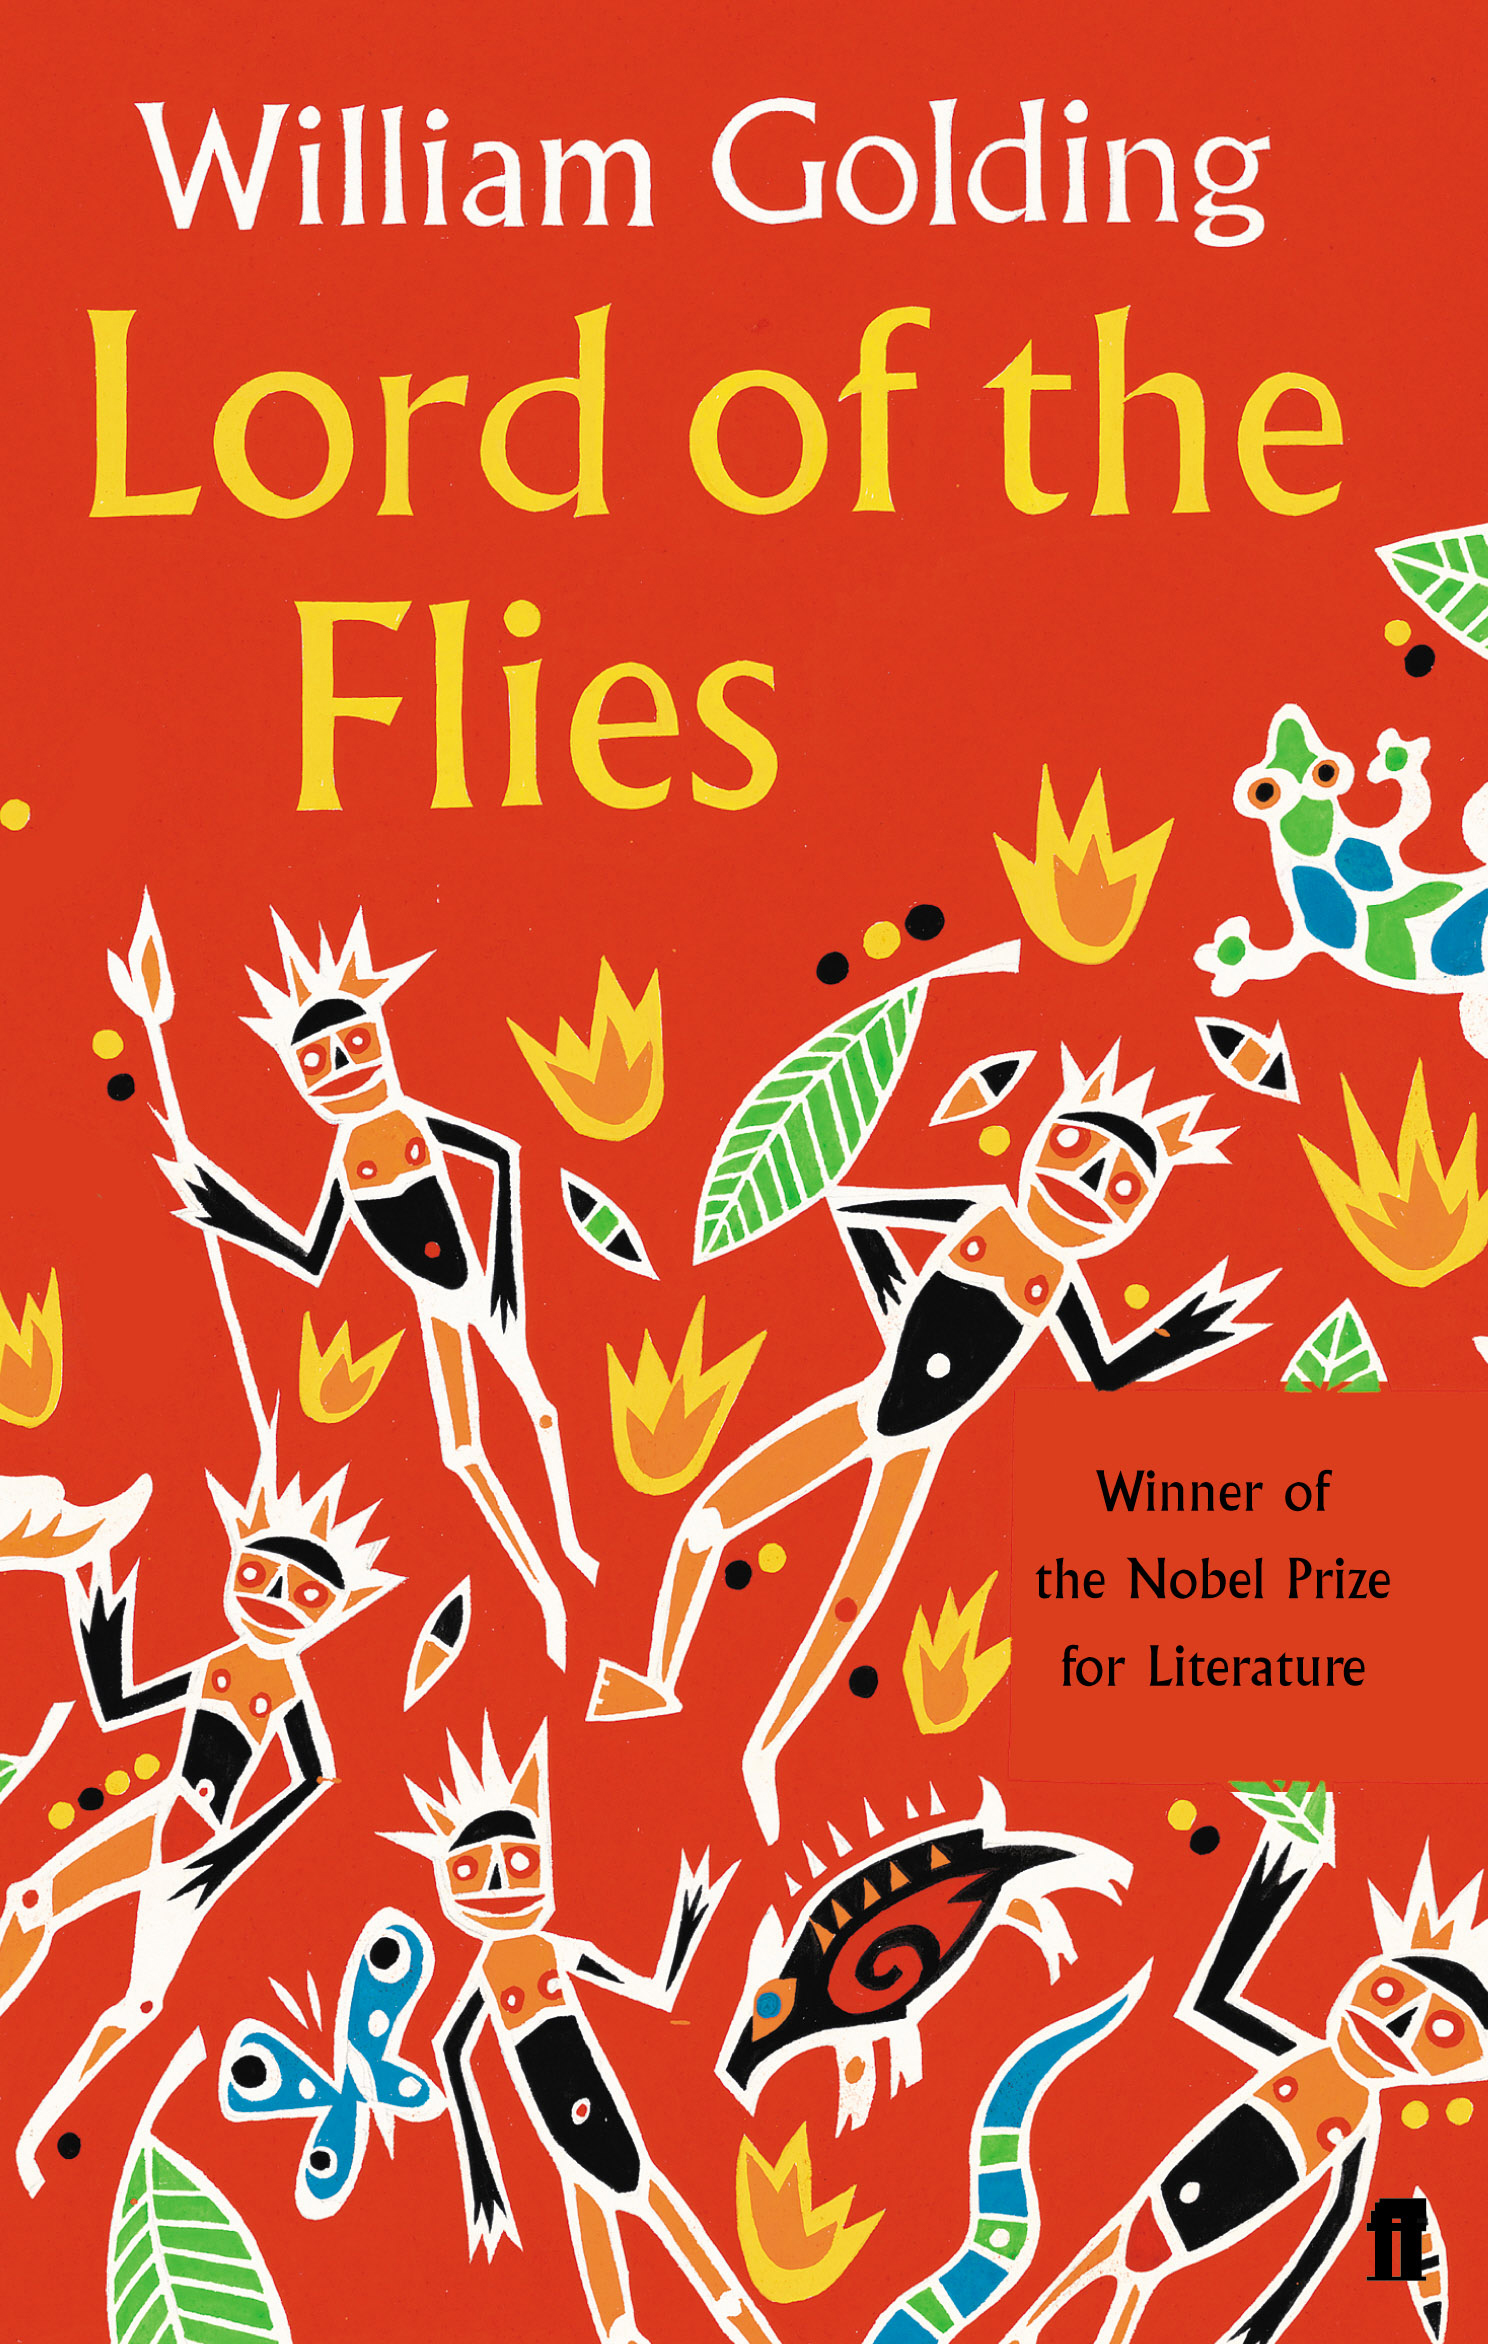 lord flies light imagery Out of this face stared two light blue eyes lord of the flies is a 1954 novel by nobel prize-winning lord of the flies (chap 1: the sound of.